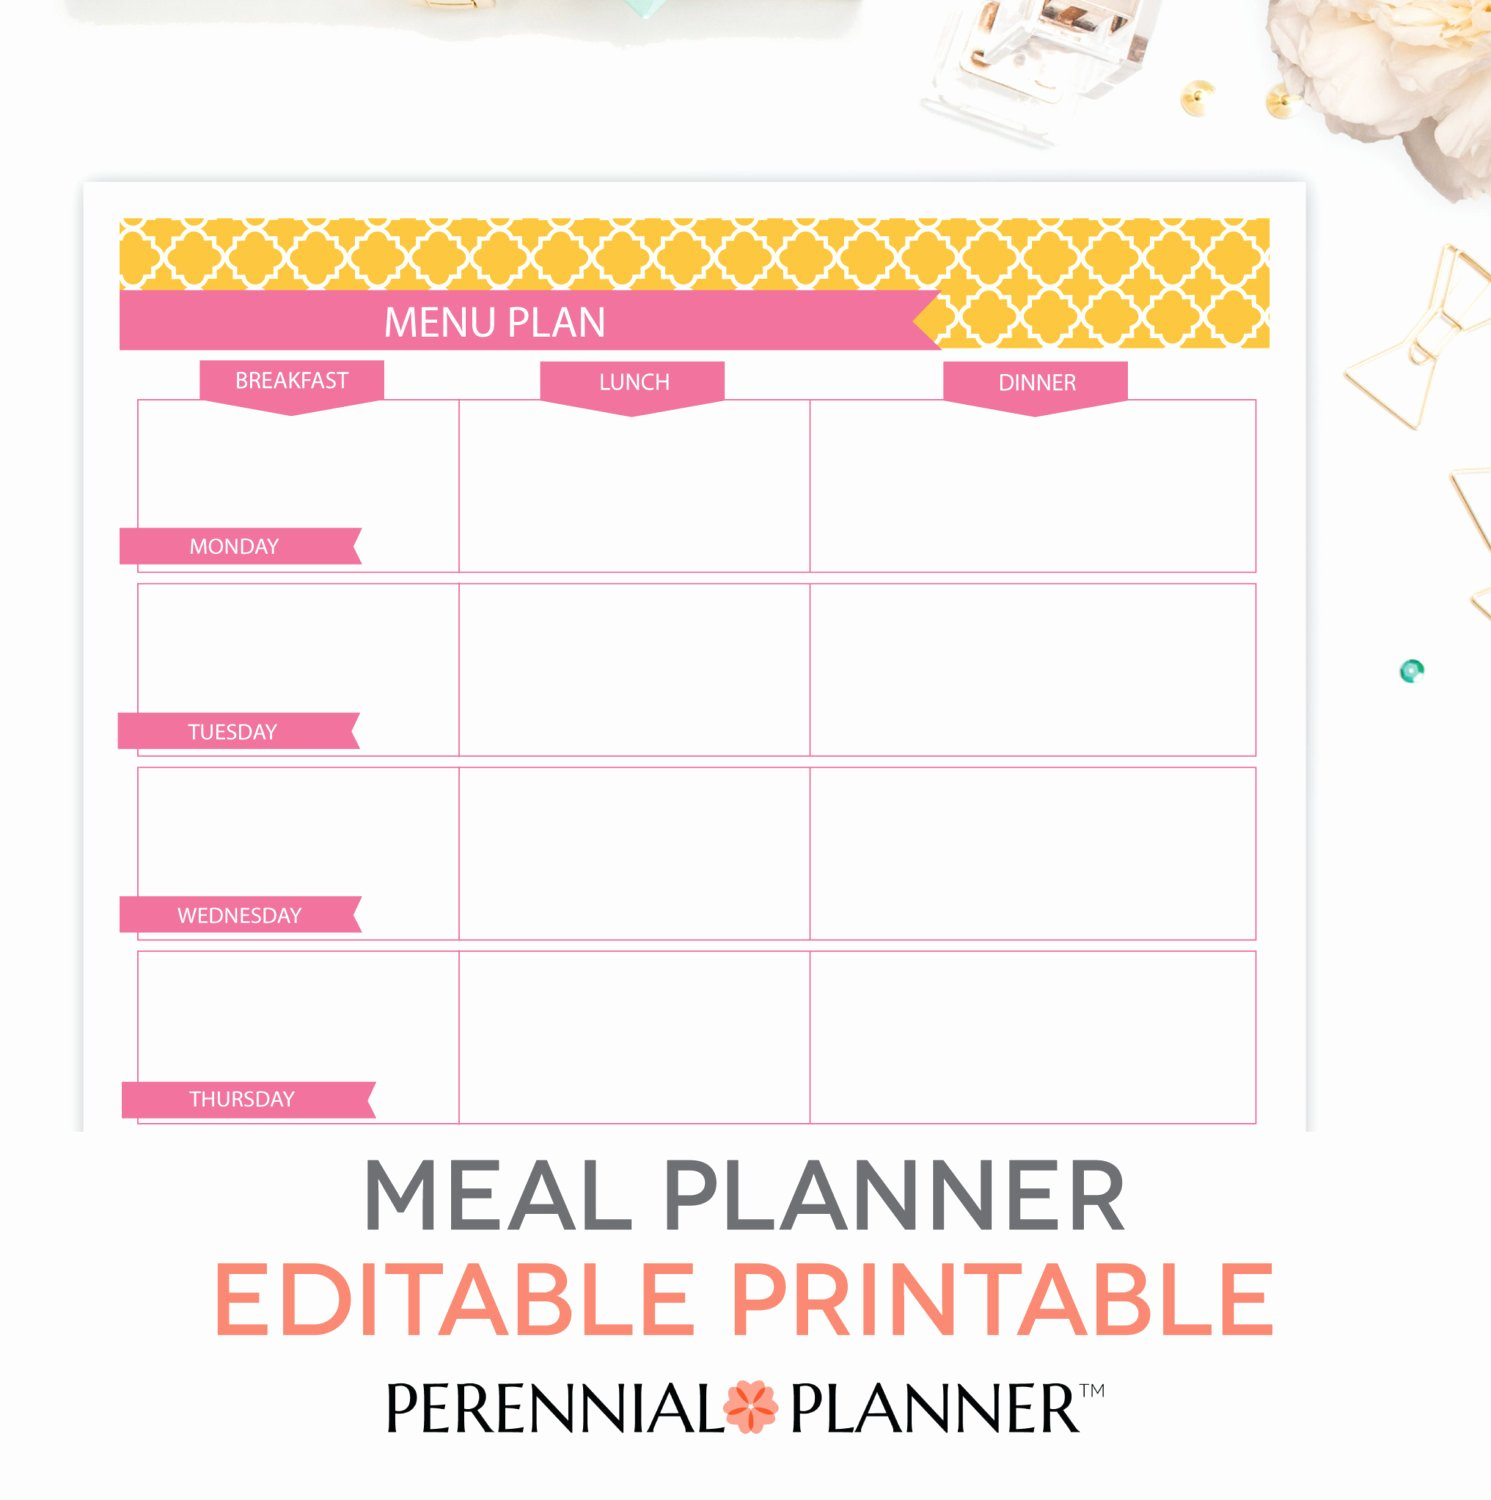 Menu Planner Template Printable Unique Menu Plan Weekly Meal Planning Template Printable Editable